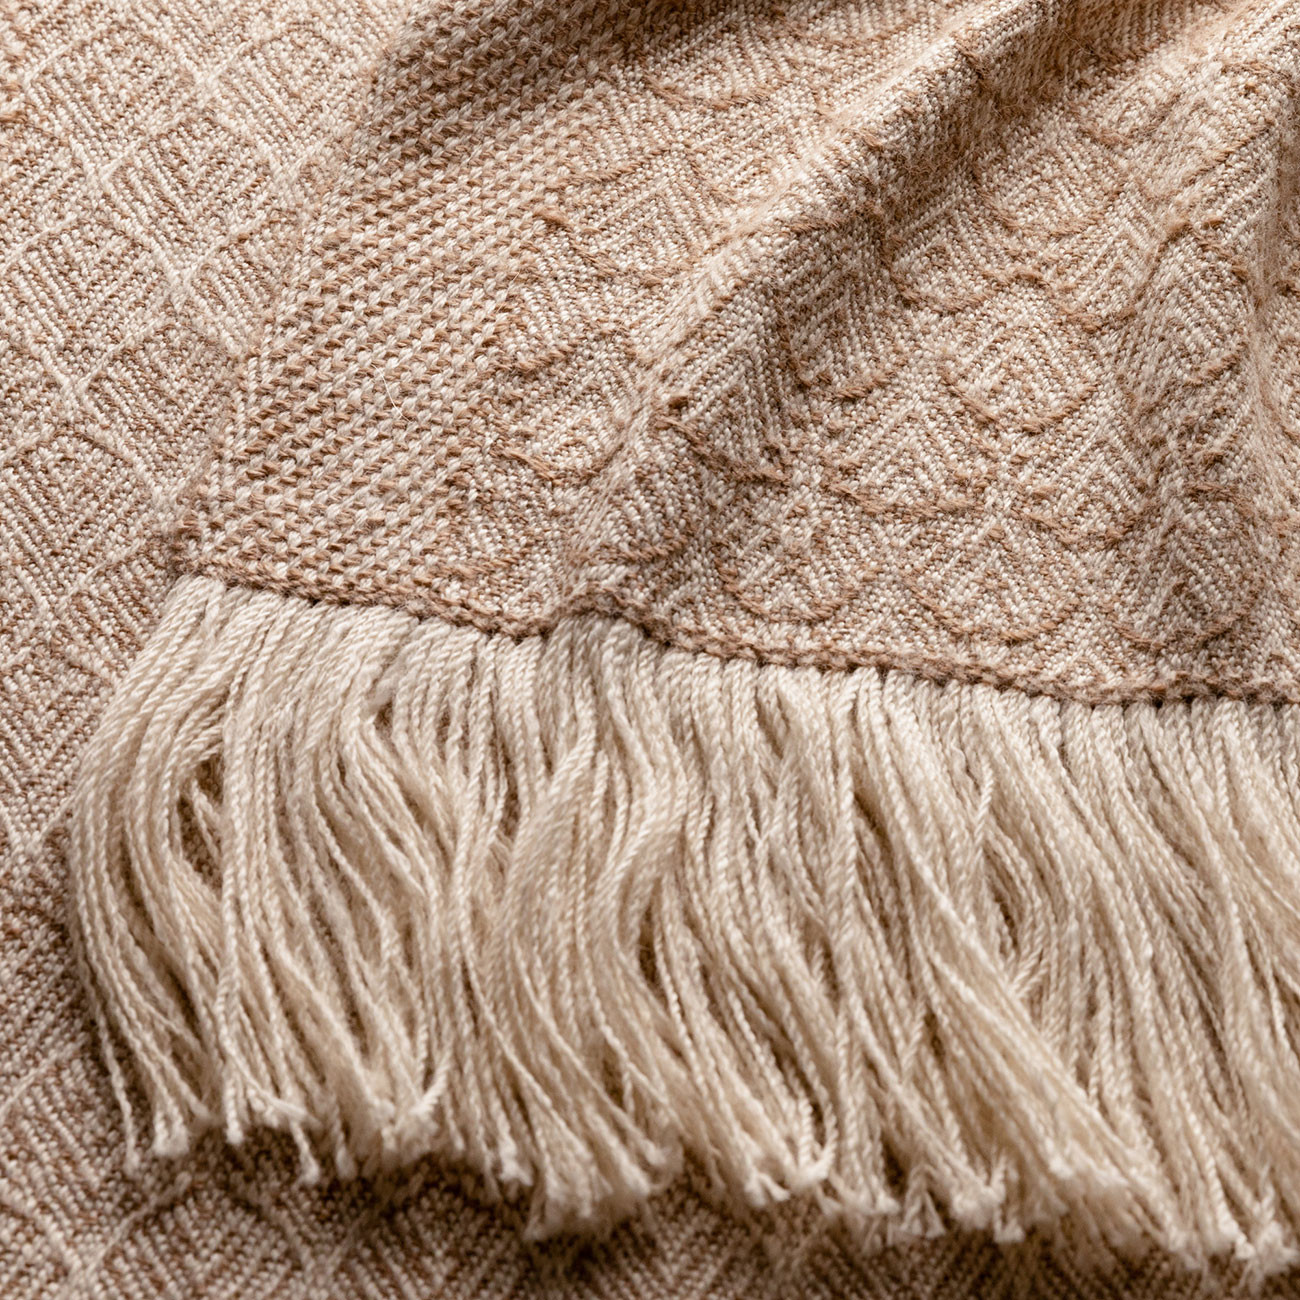 Handwoven Rose and Alpaca Feather Wide Scarf - Natural Fawn and Cream Alpaca and Rose Fibre - 3